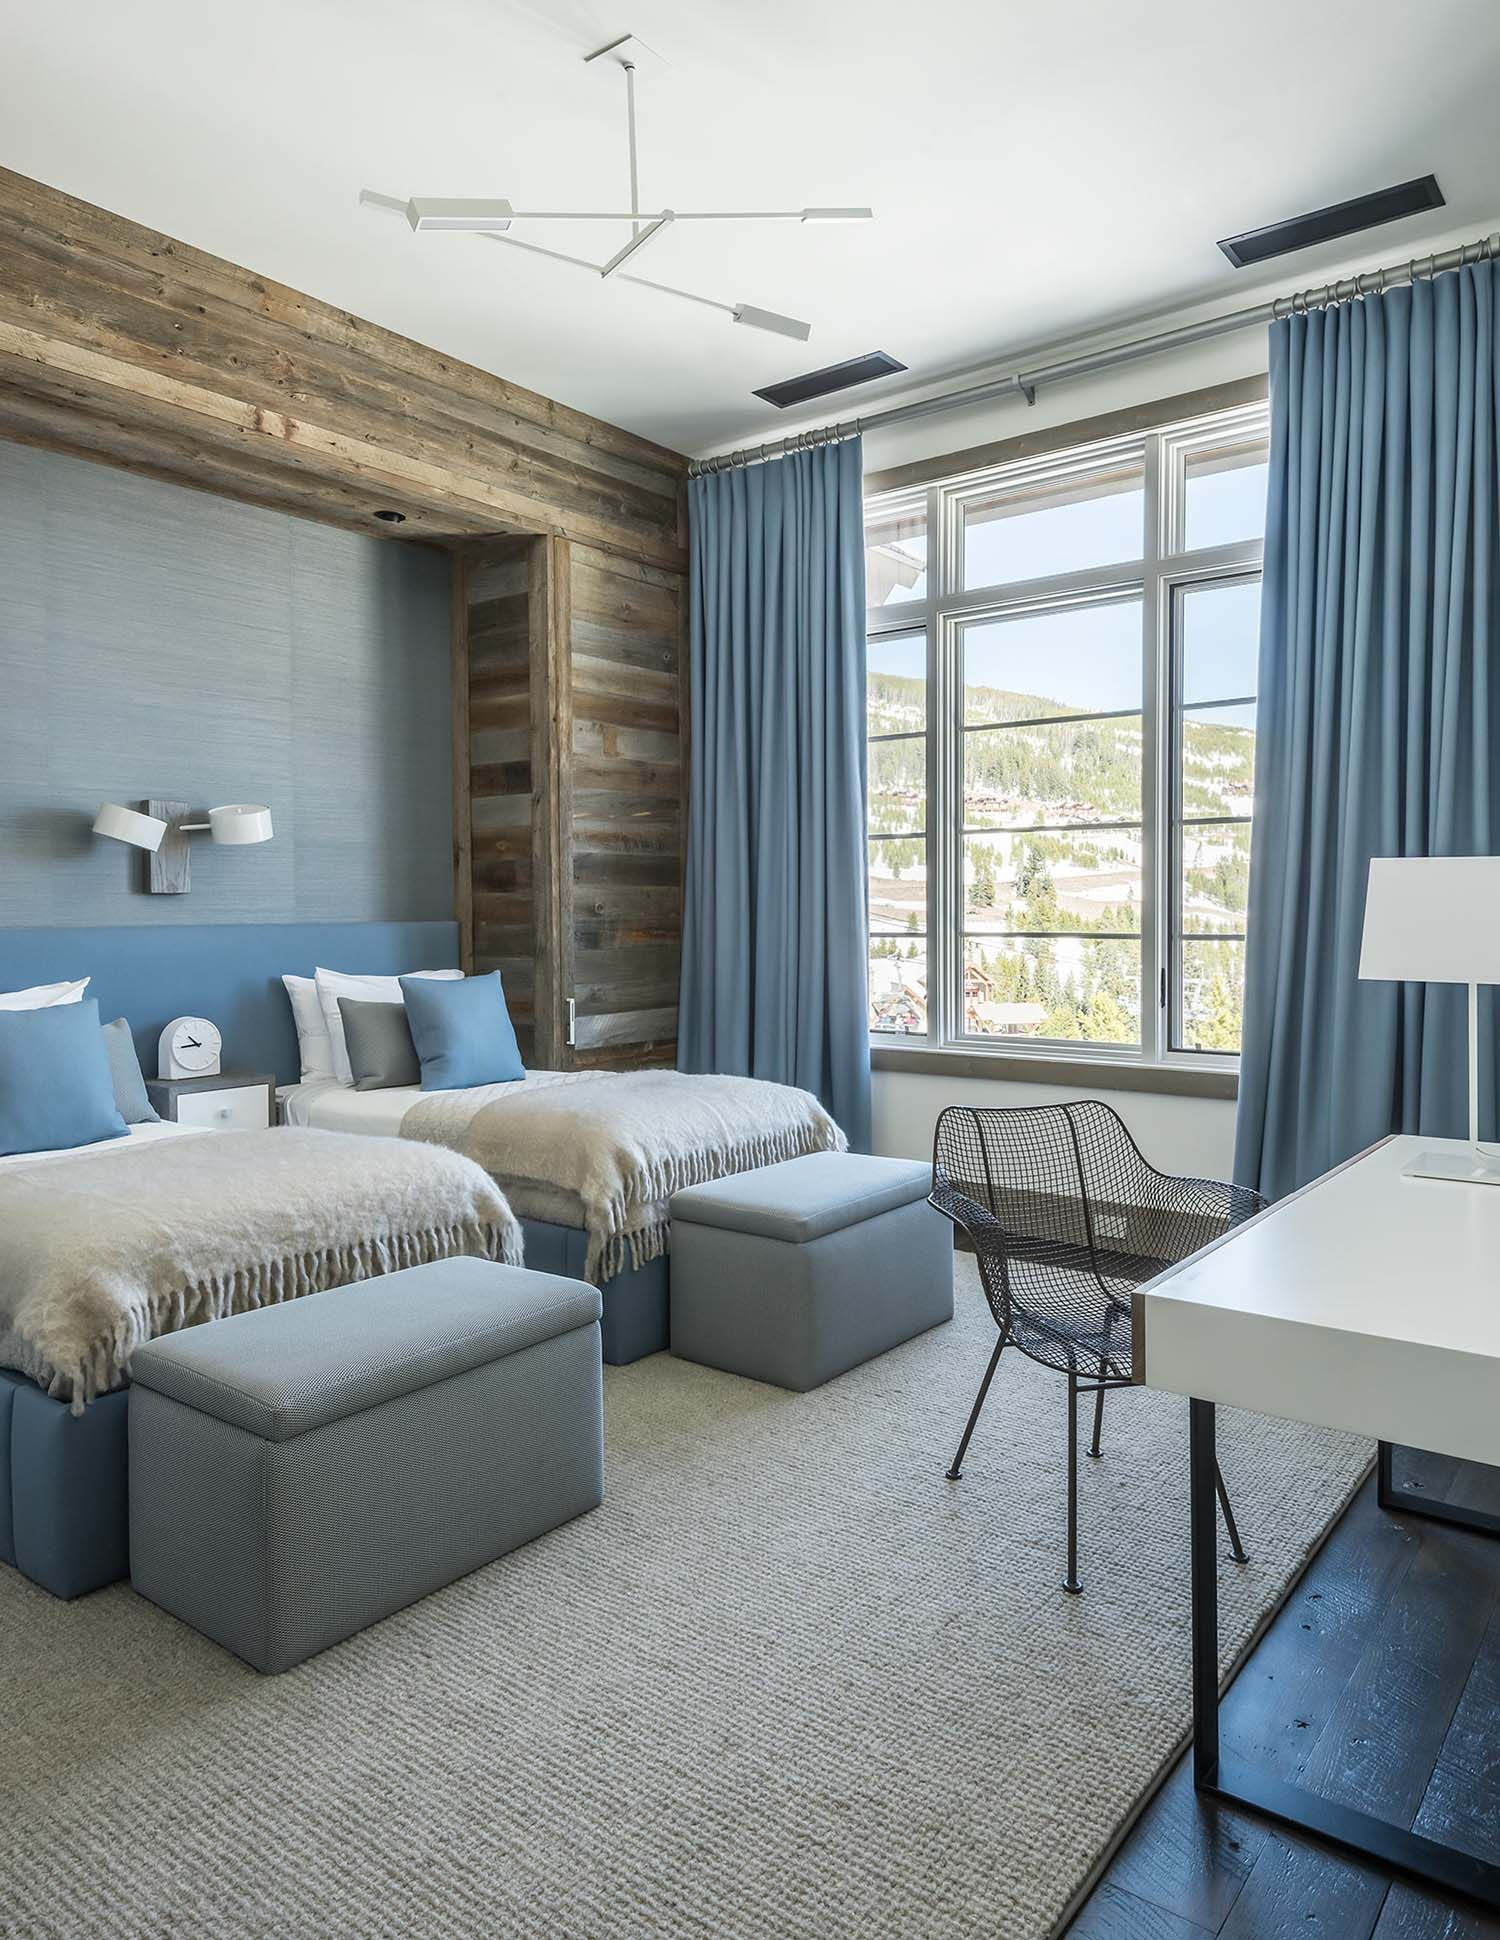 Hillside snowcrest the ultimate modern rustic ski chalet in montana blue bedroom also exciting grey ideas for extraordinary place to sleep rh pinterest